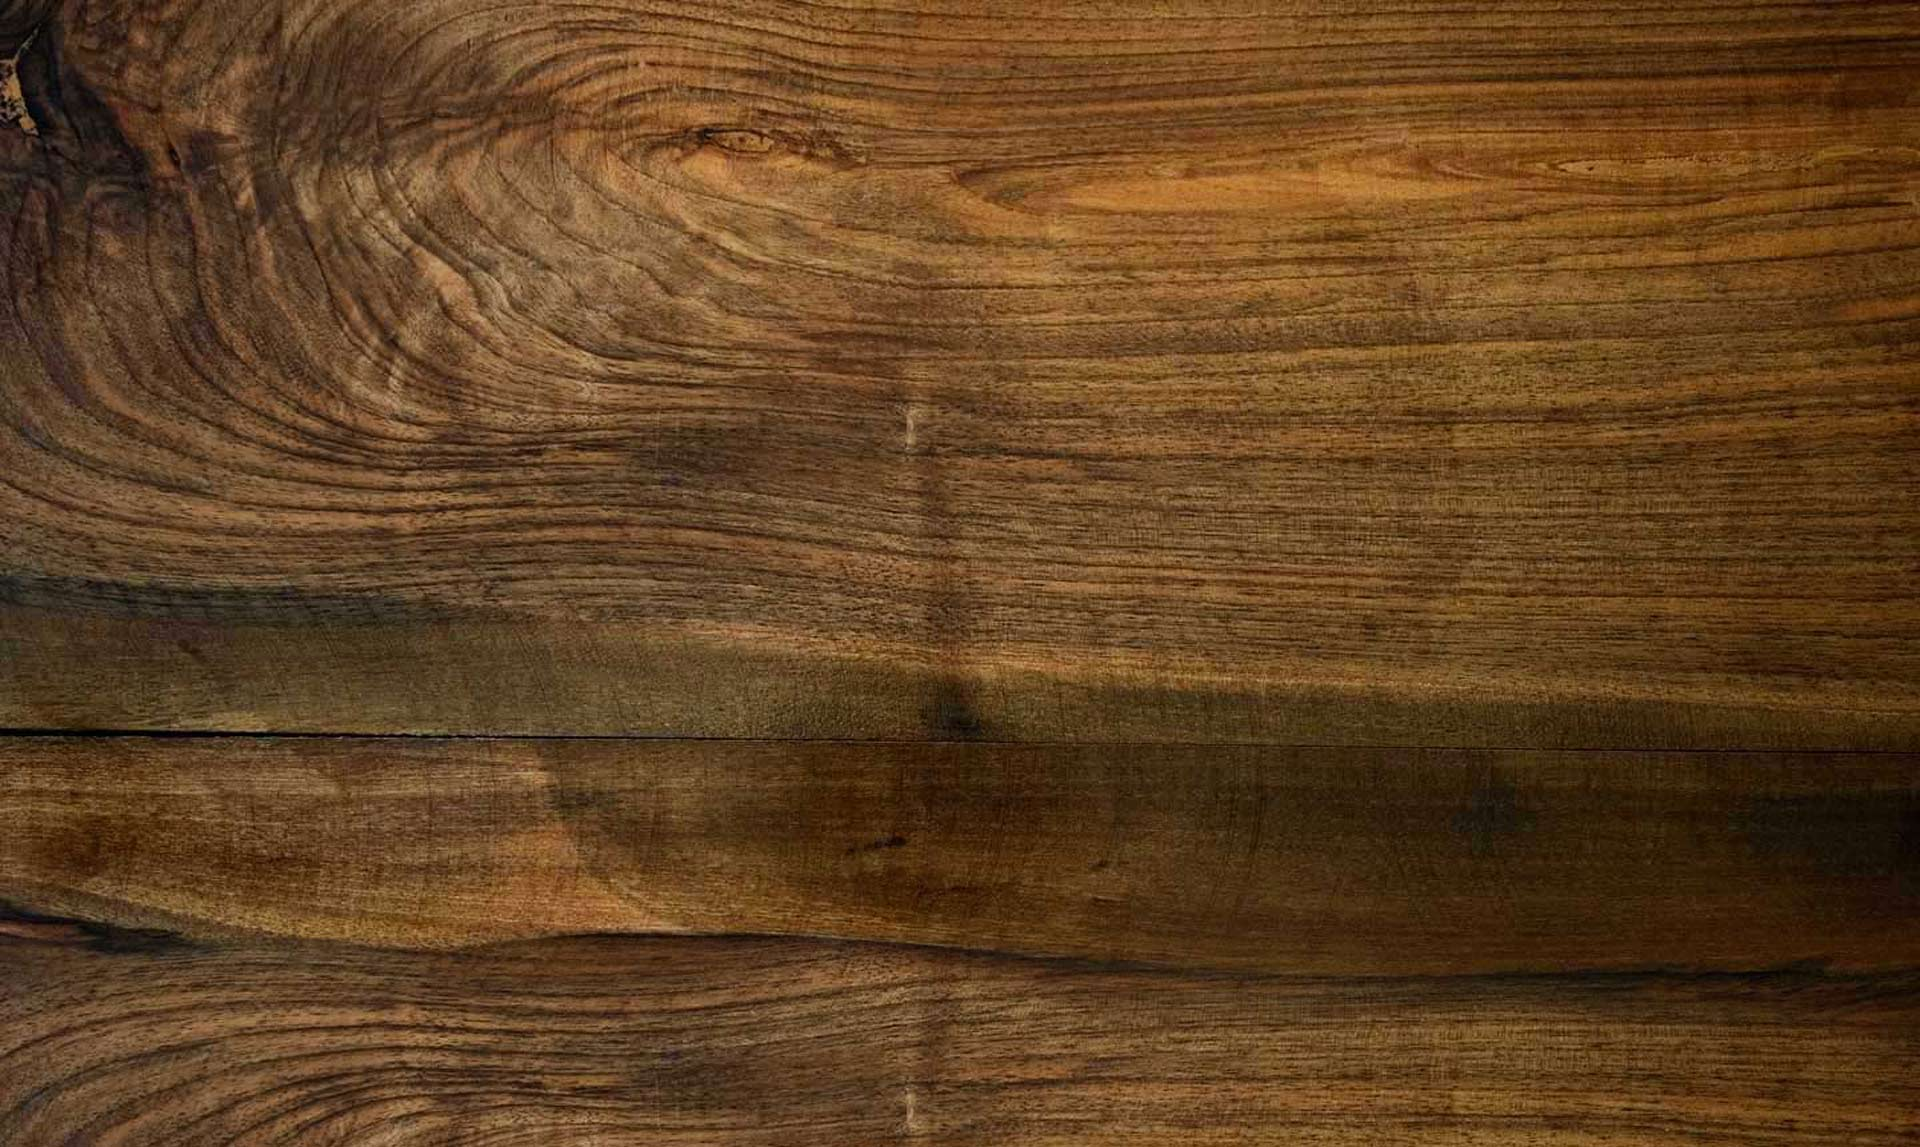 wood-background-image